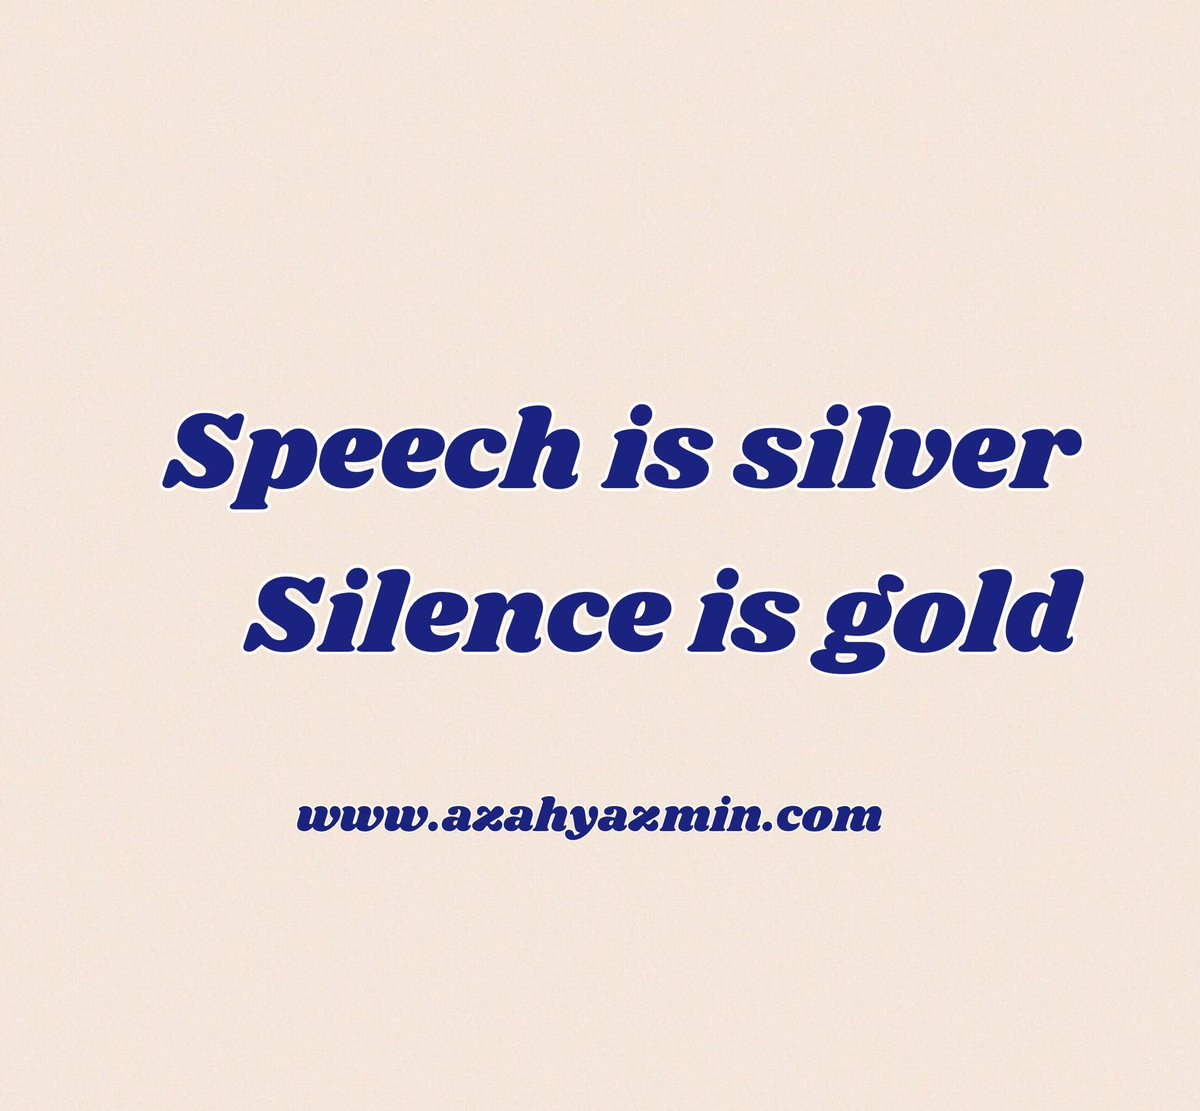 speech is silver and silence is golden essay Speech is silver, but silence is golden source: the oxford dictionary of phrase and fable author(s): elizabeth knowleselizabeth knowles proverbial saying, mid 19th.